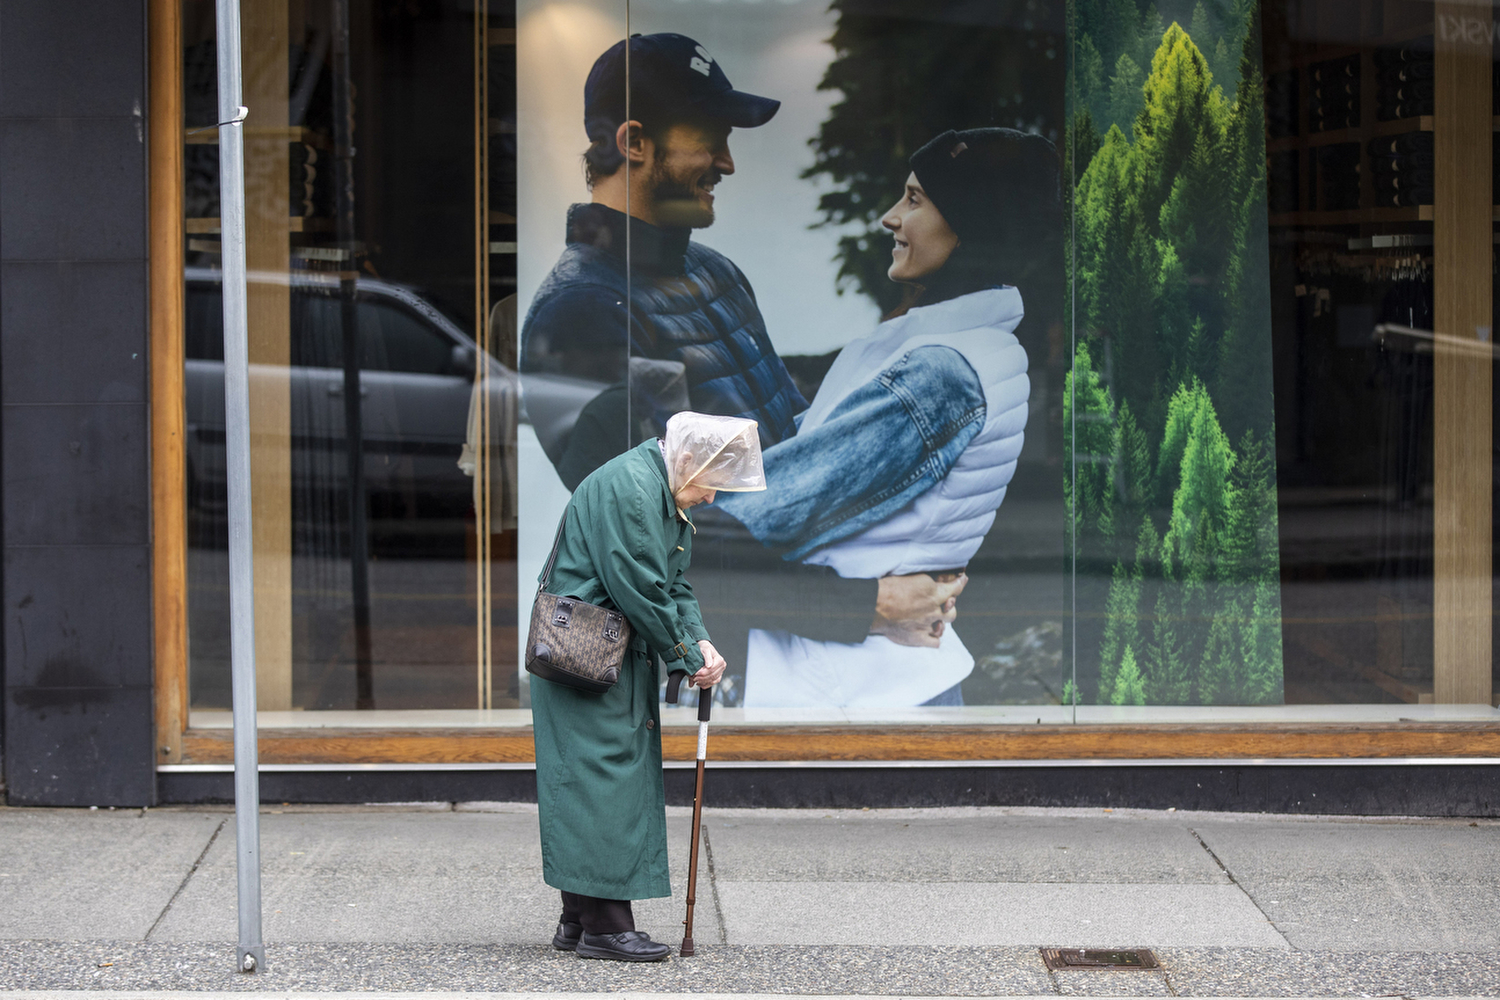 A woman waits for a bus on a near empty Robson Street in downtown Vancouver on March 30, 2020. (Ben Nelms/CBC Vancouver)